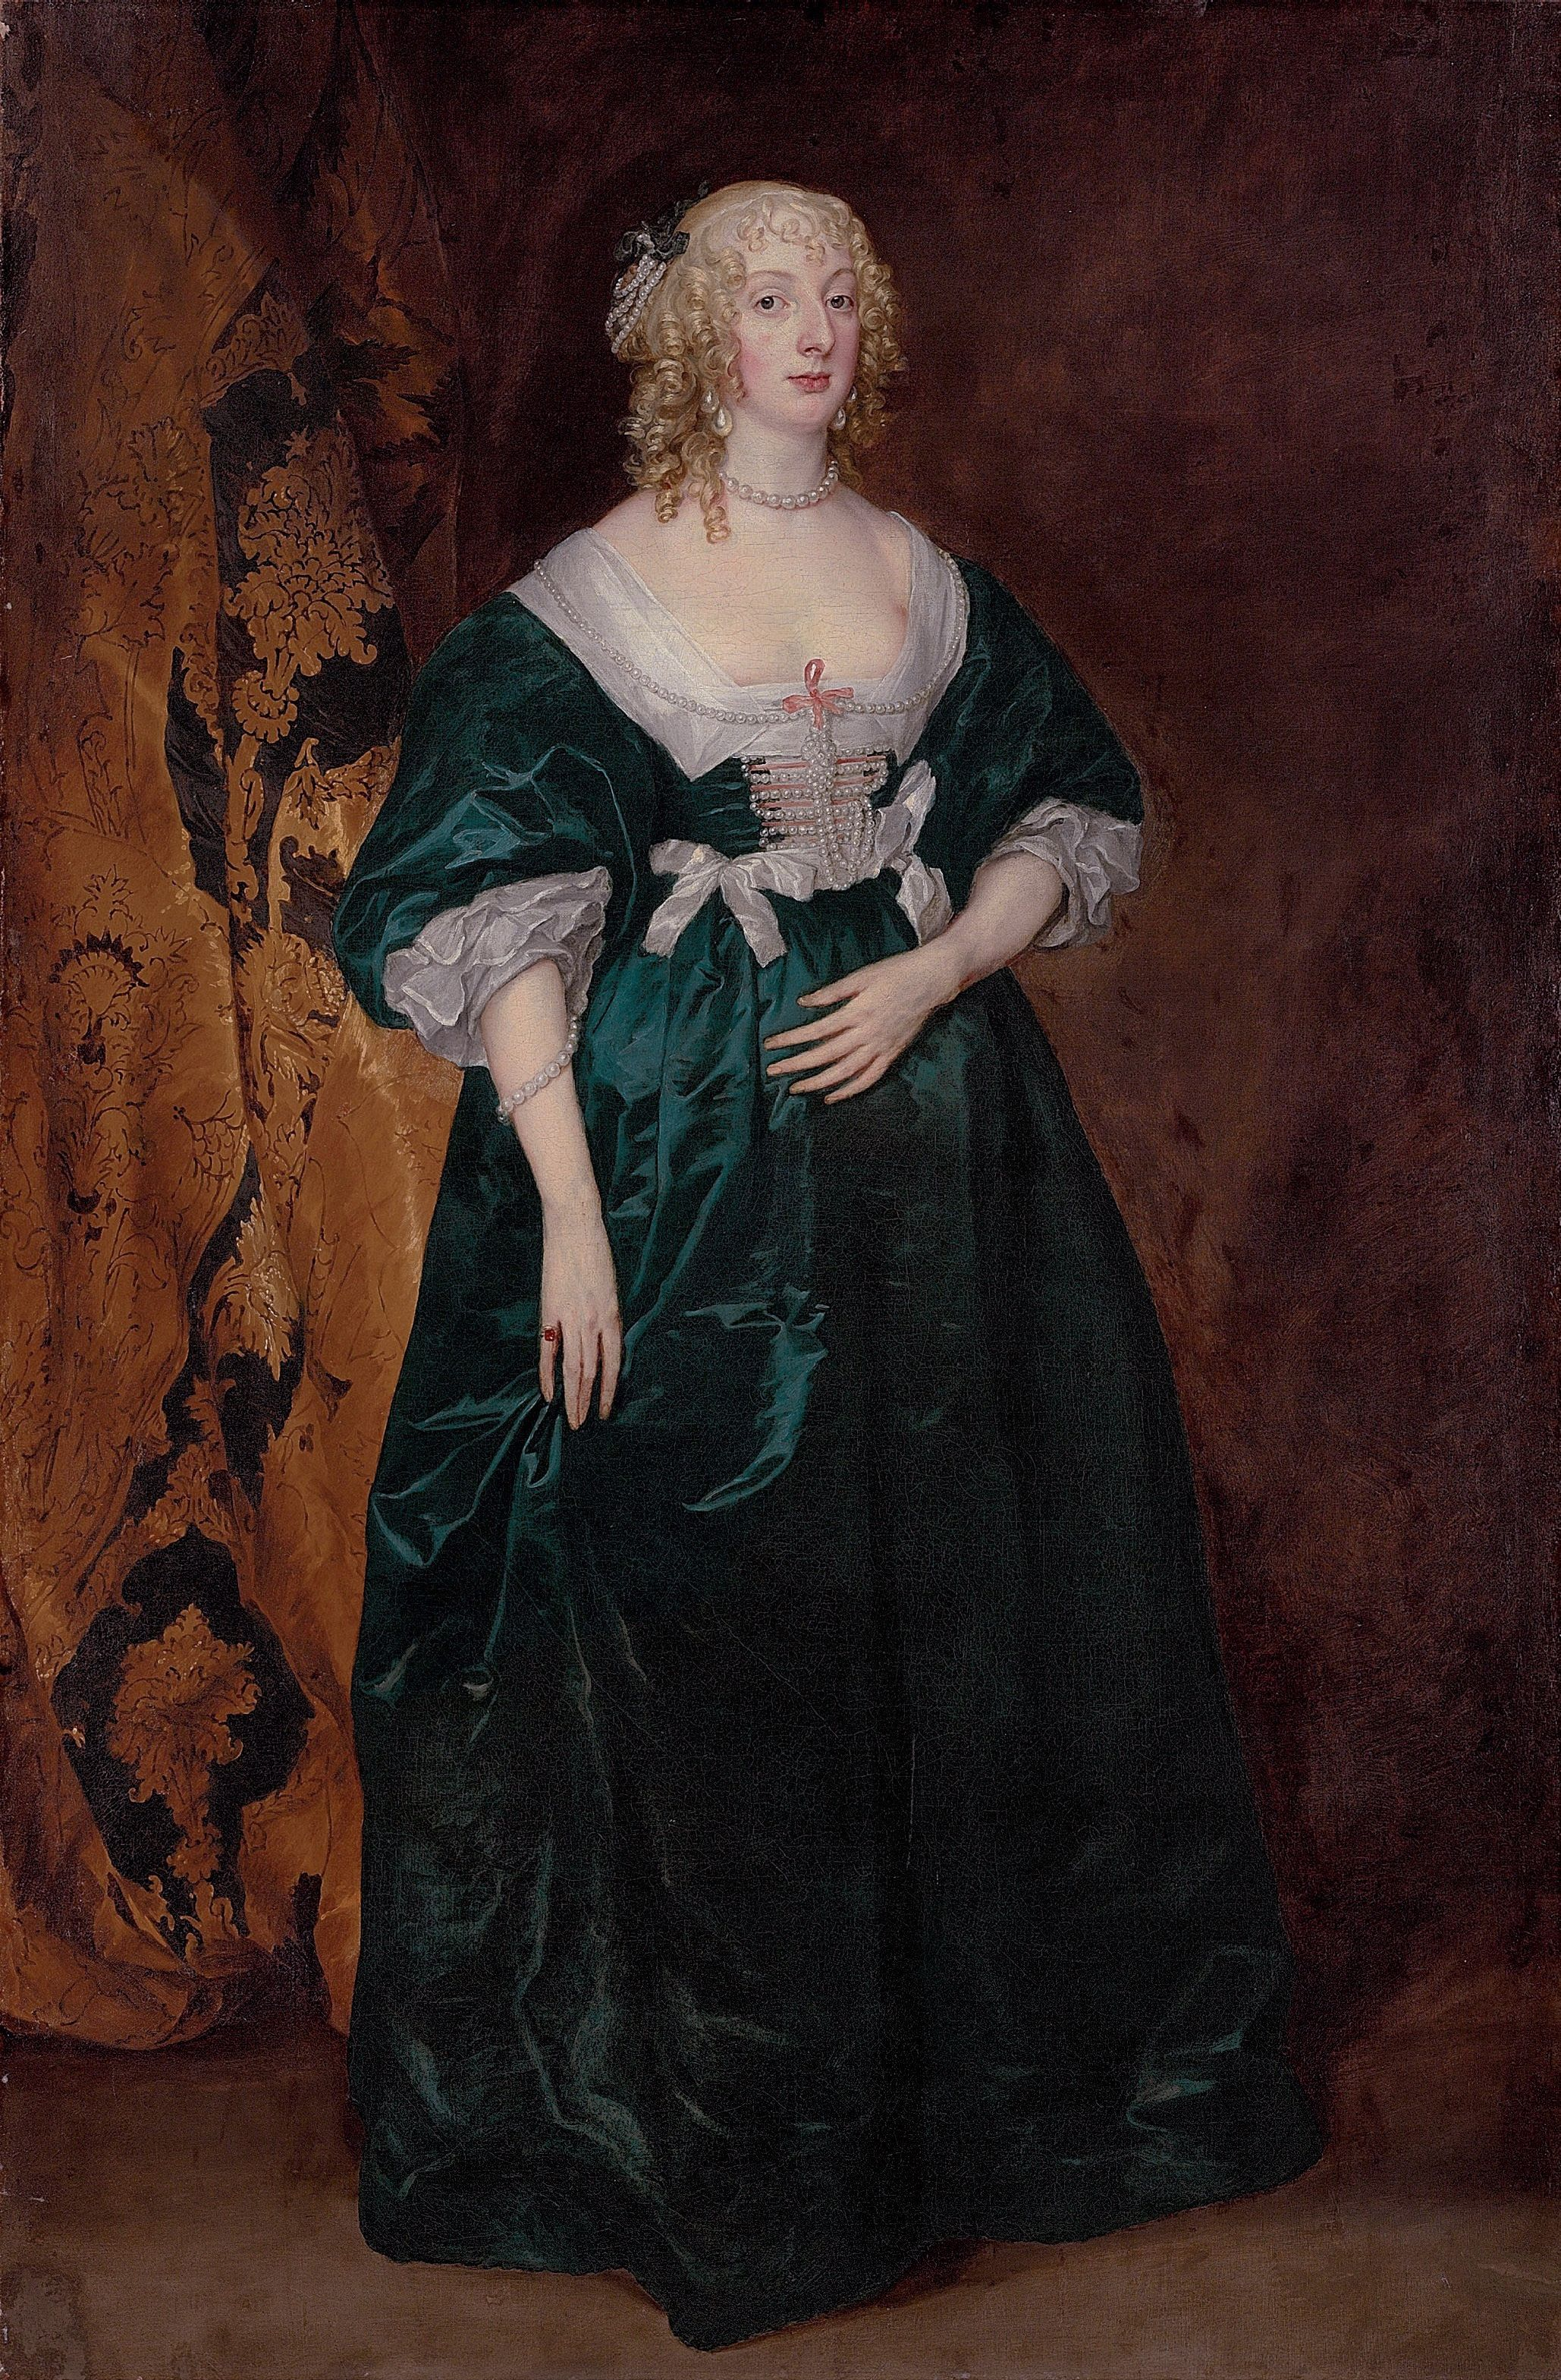 Anne Sophia, Countess of Carnarvon by Anthony van Dyck, unknown date (ca 1630's?) UK http://www.christies.com/LotFinder/lot_details.aspx?intObjectID=5339098